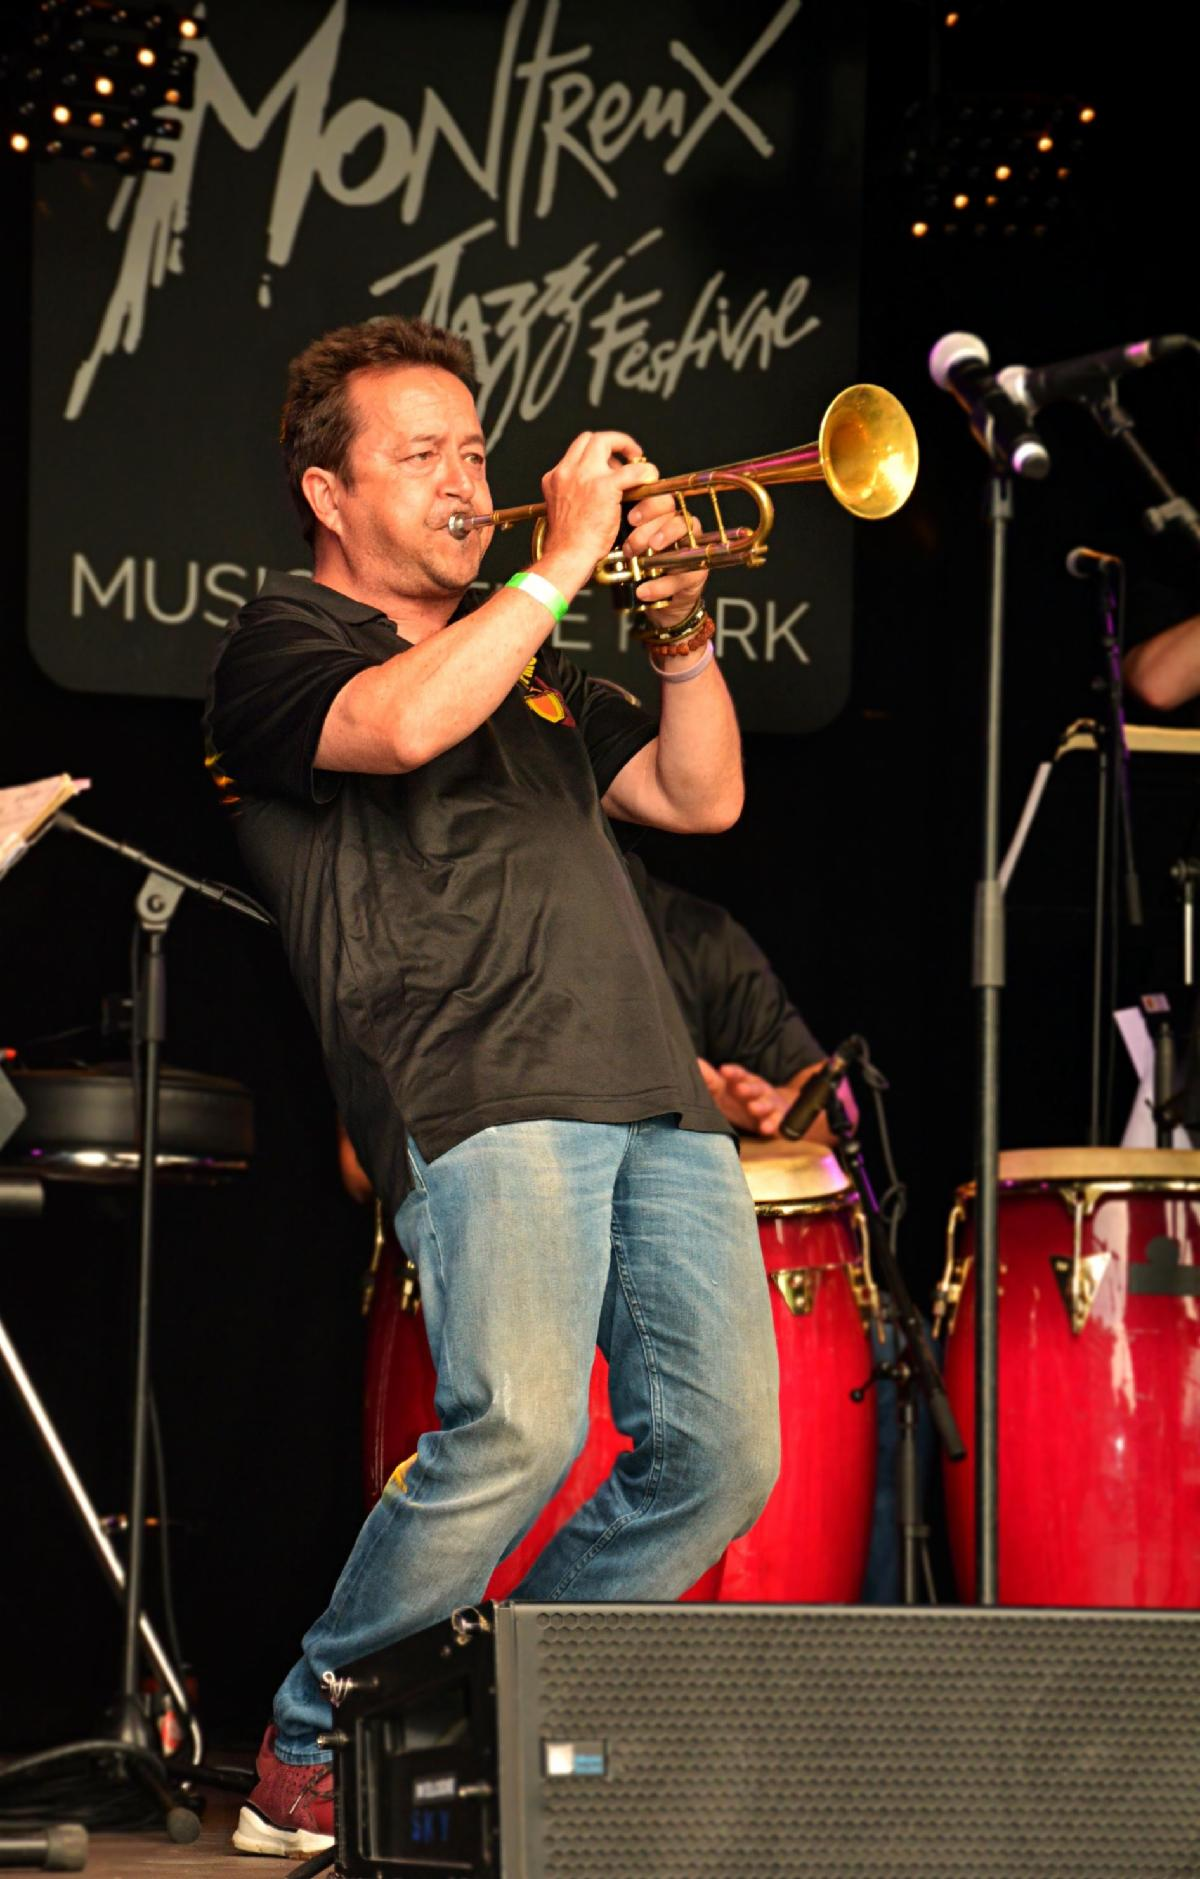 A man in blue jeans and a black shirt leans back as he plays the trumpet onstage.